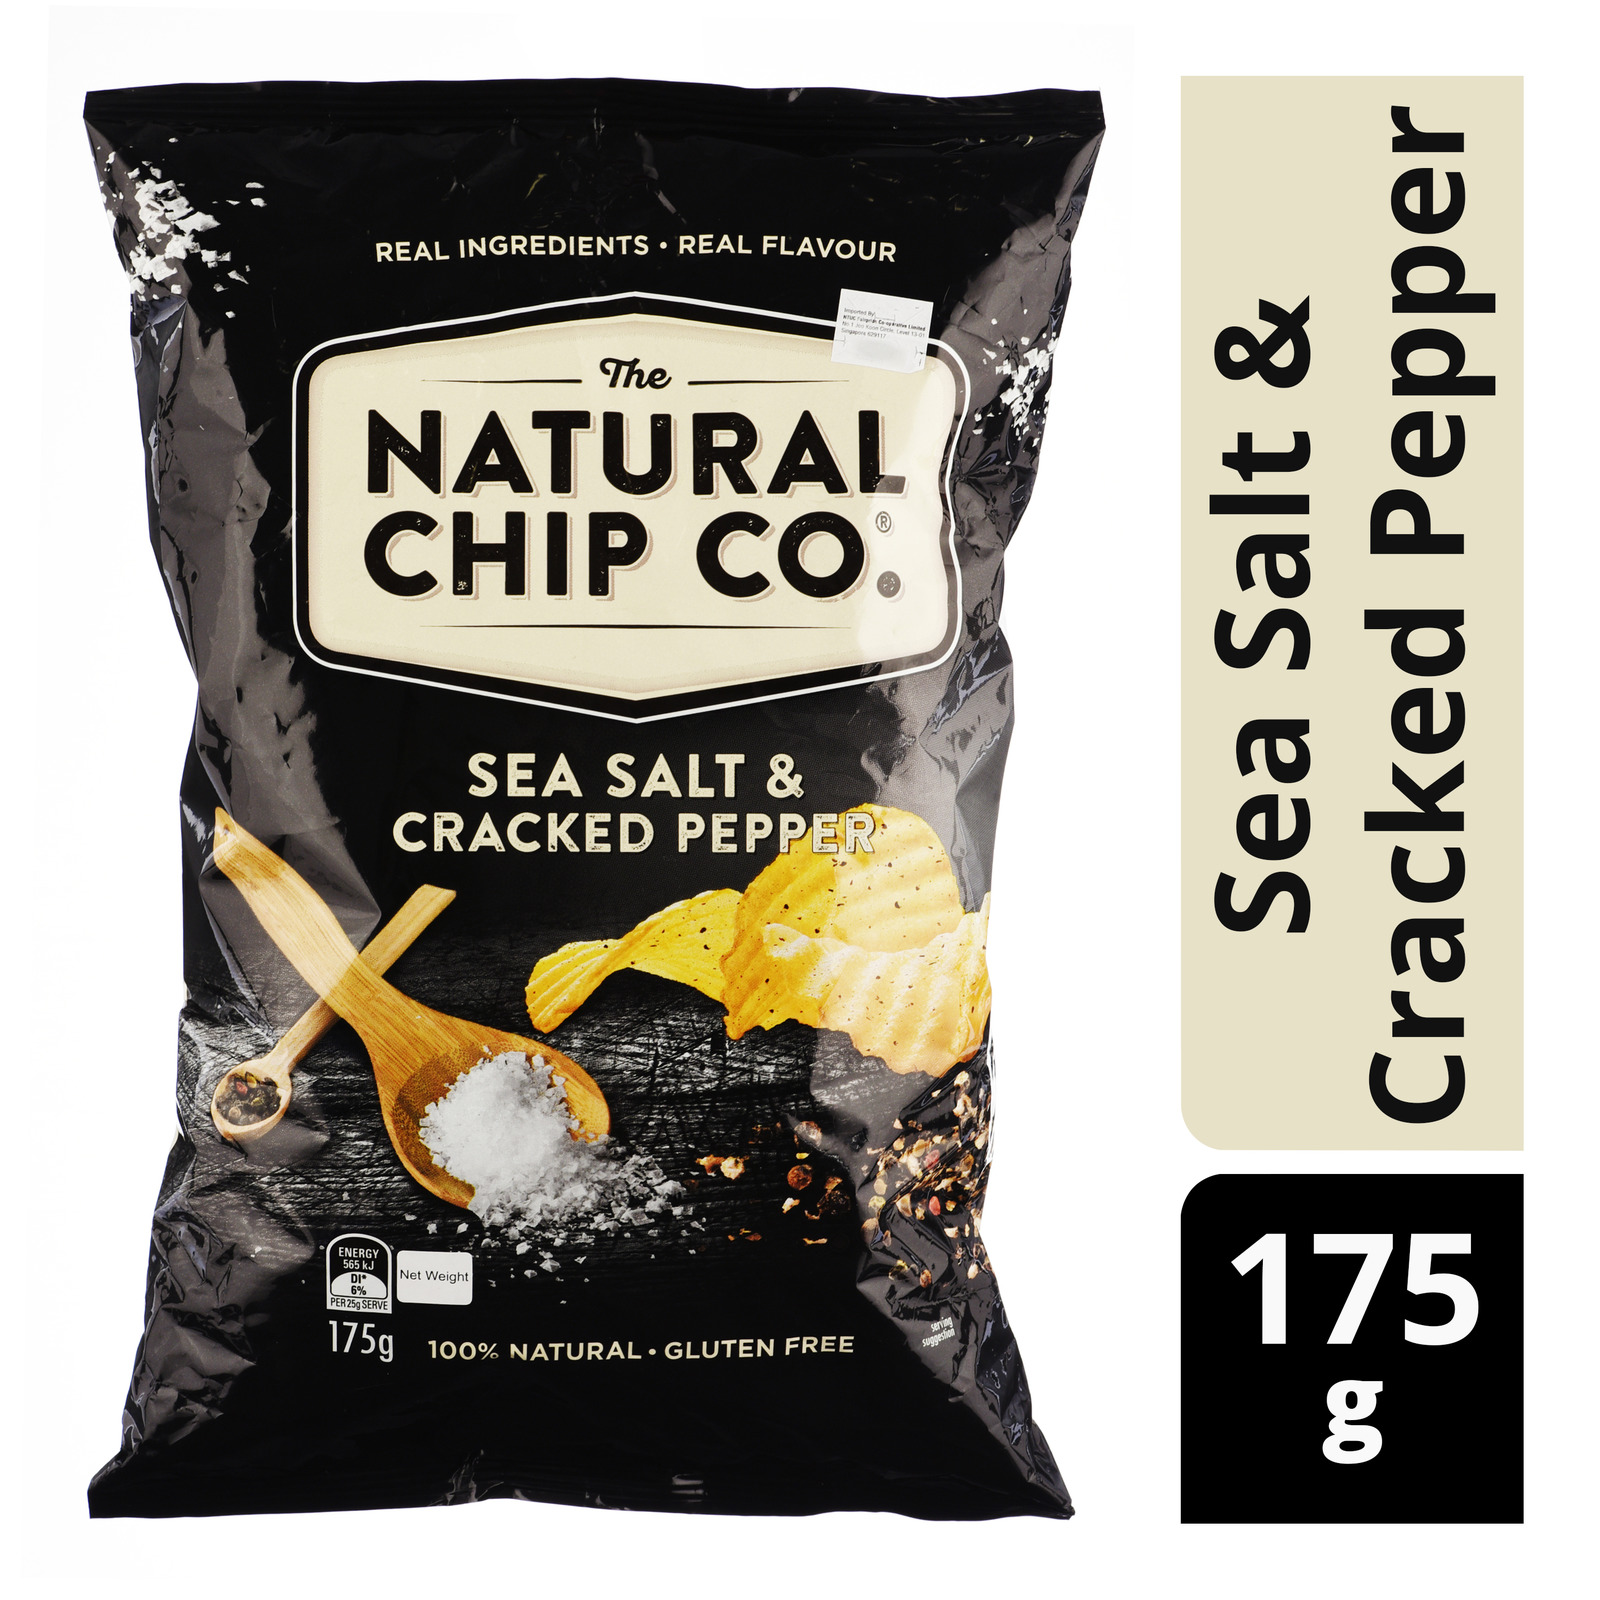 The Natural Chip Co Potato Chips - Sea Salt & Cracked Pepper